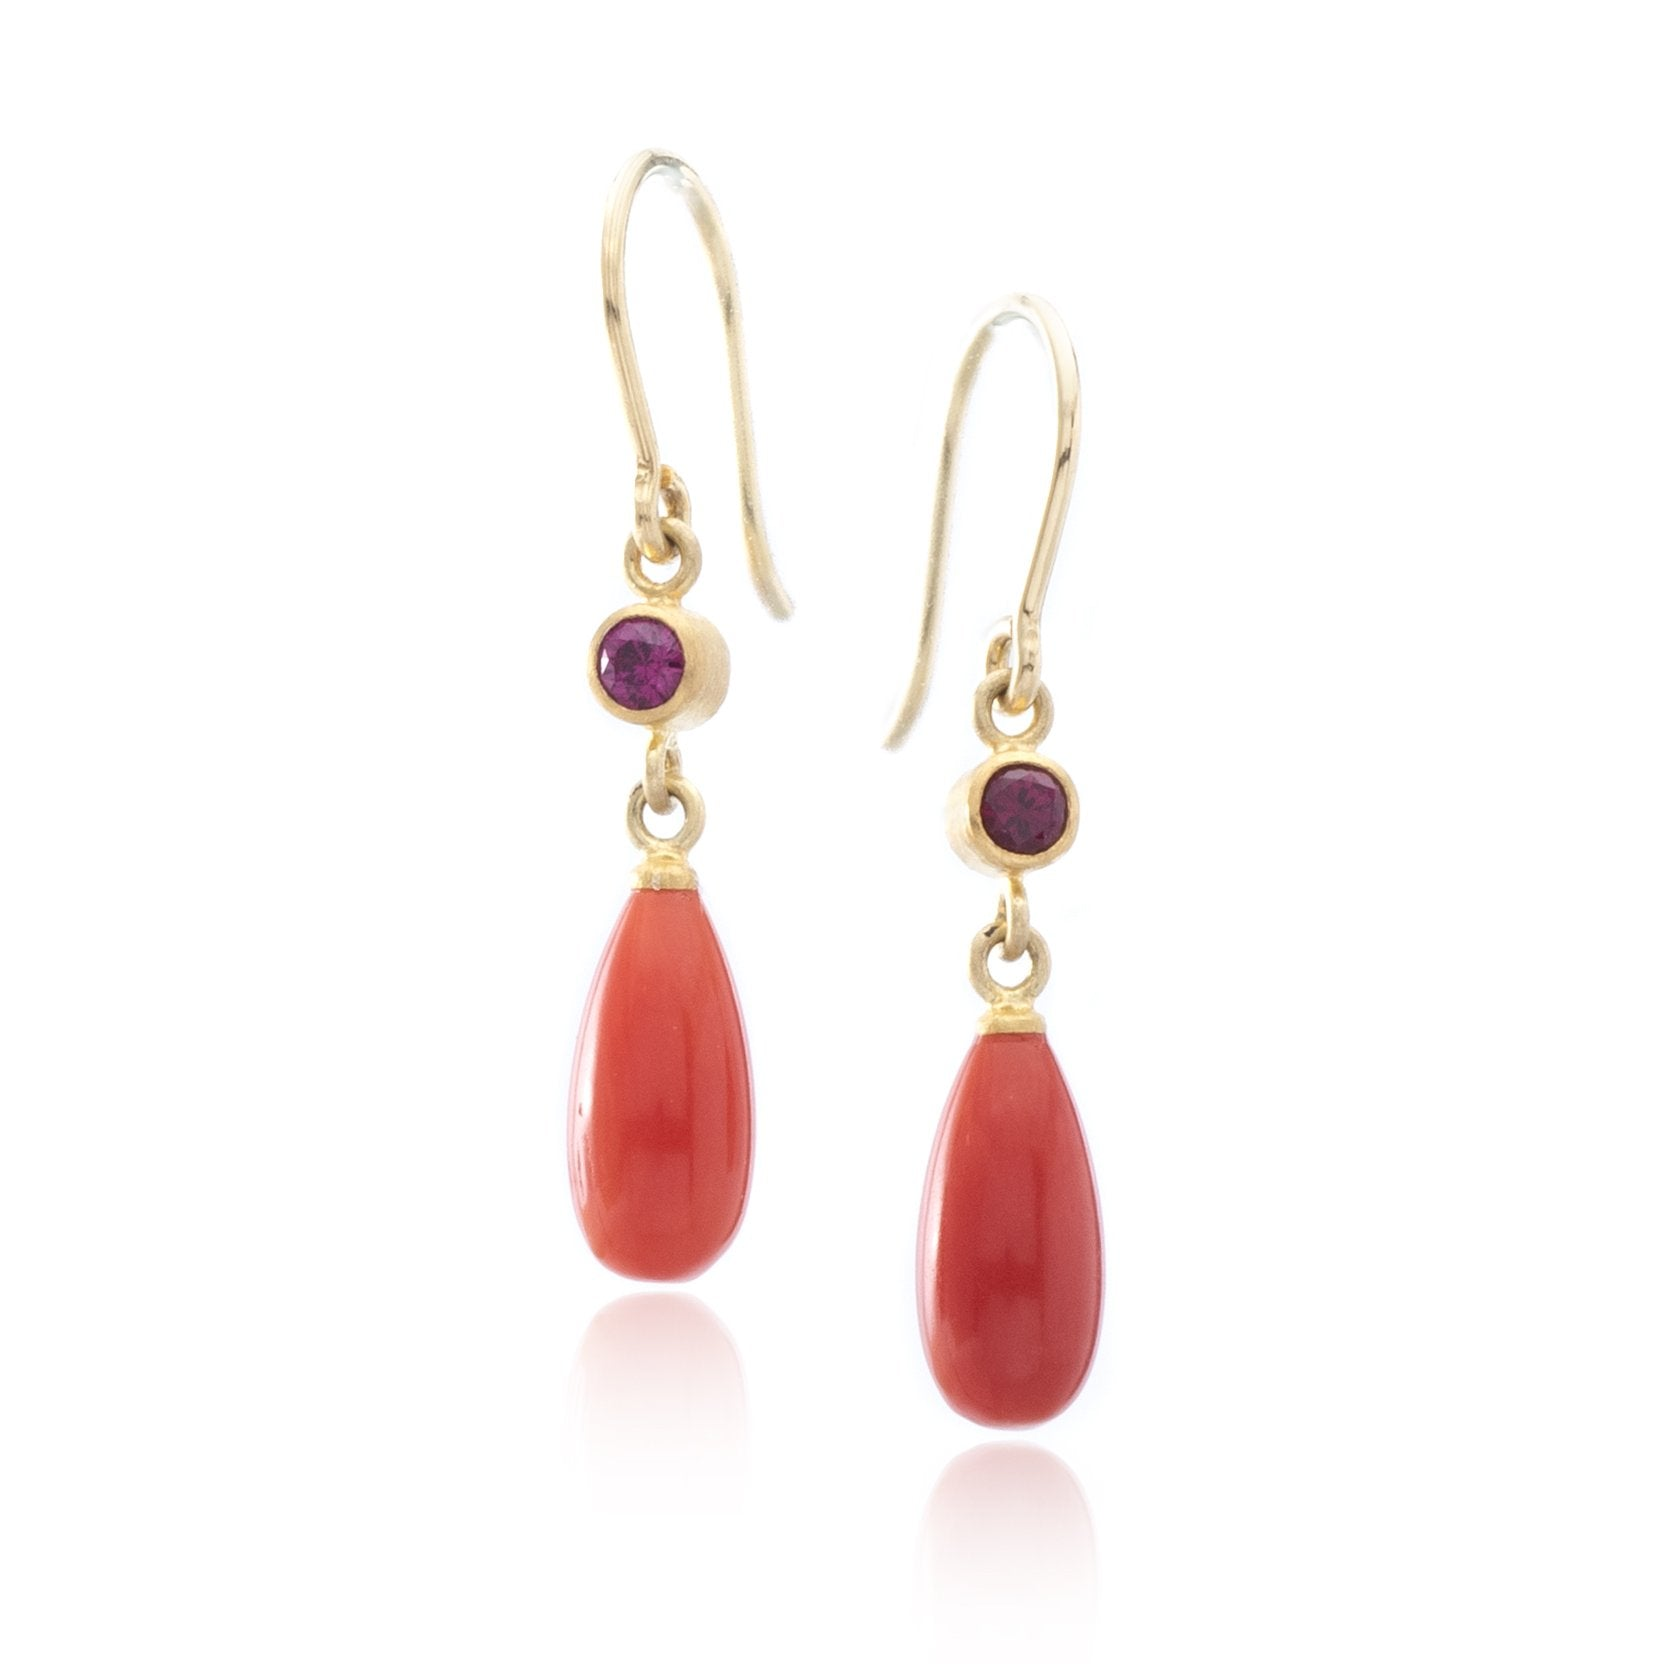 22K and 18K Yellow Gold Coral and Ruby Drop Earrings